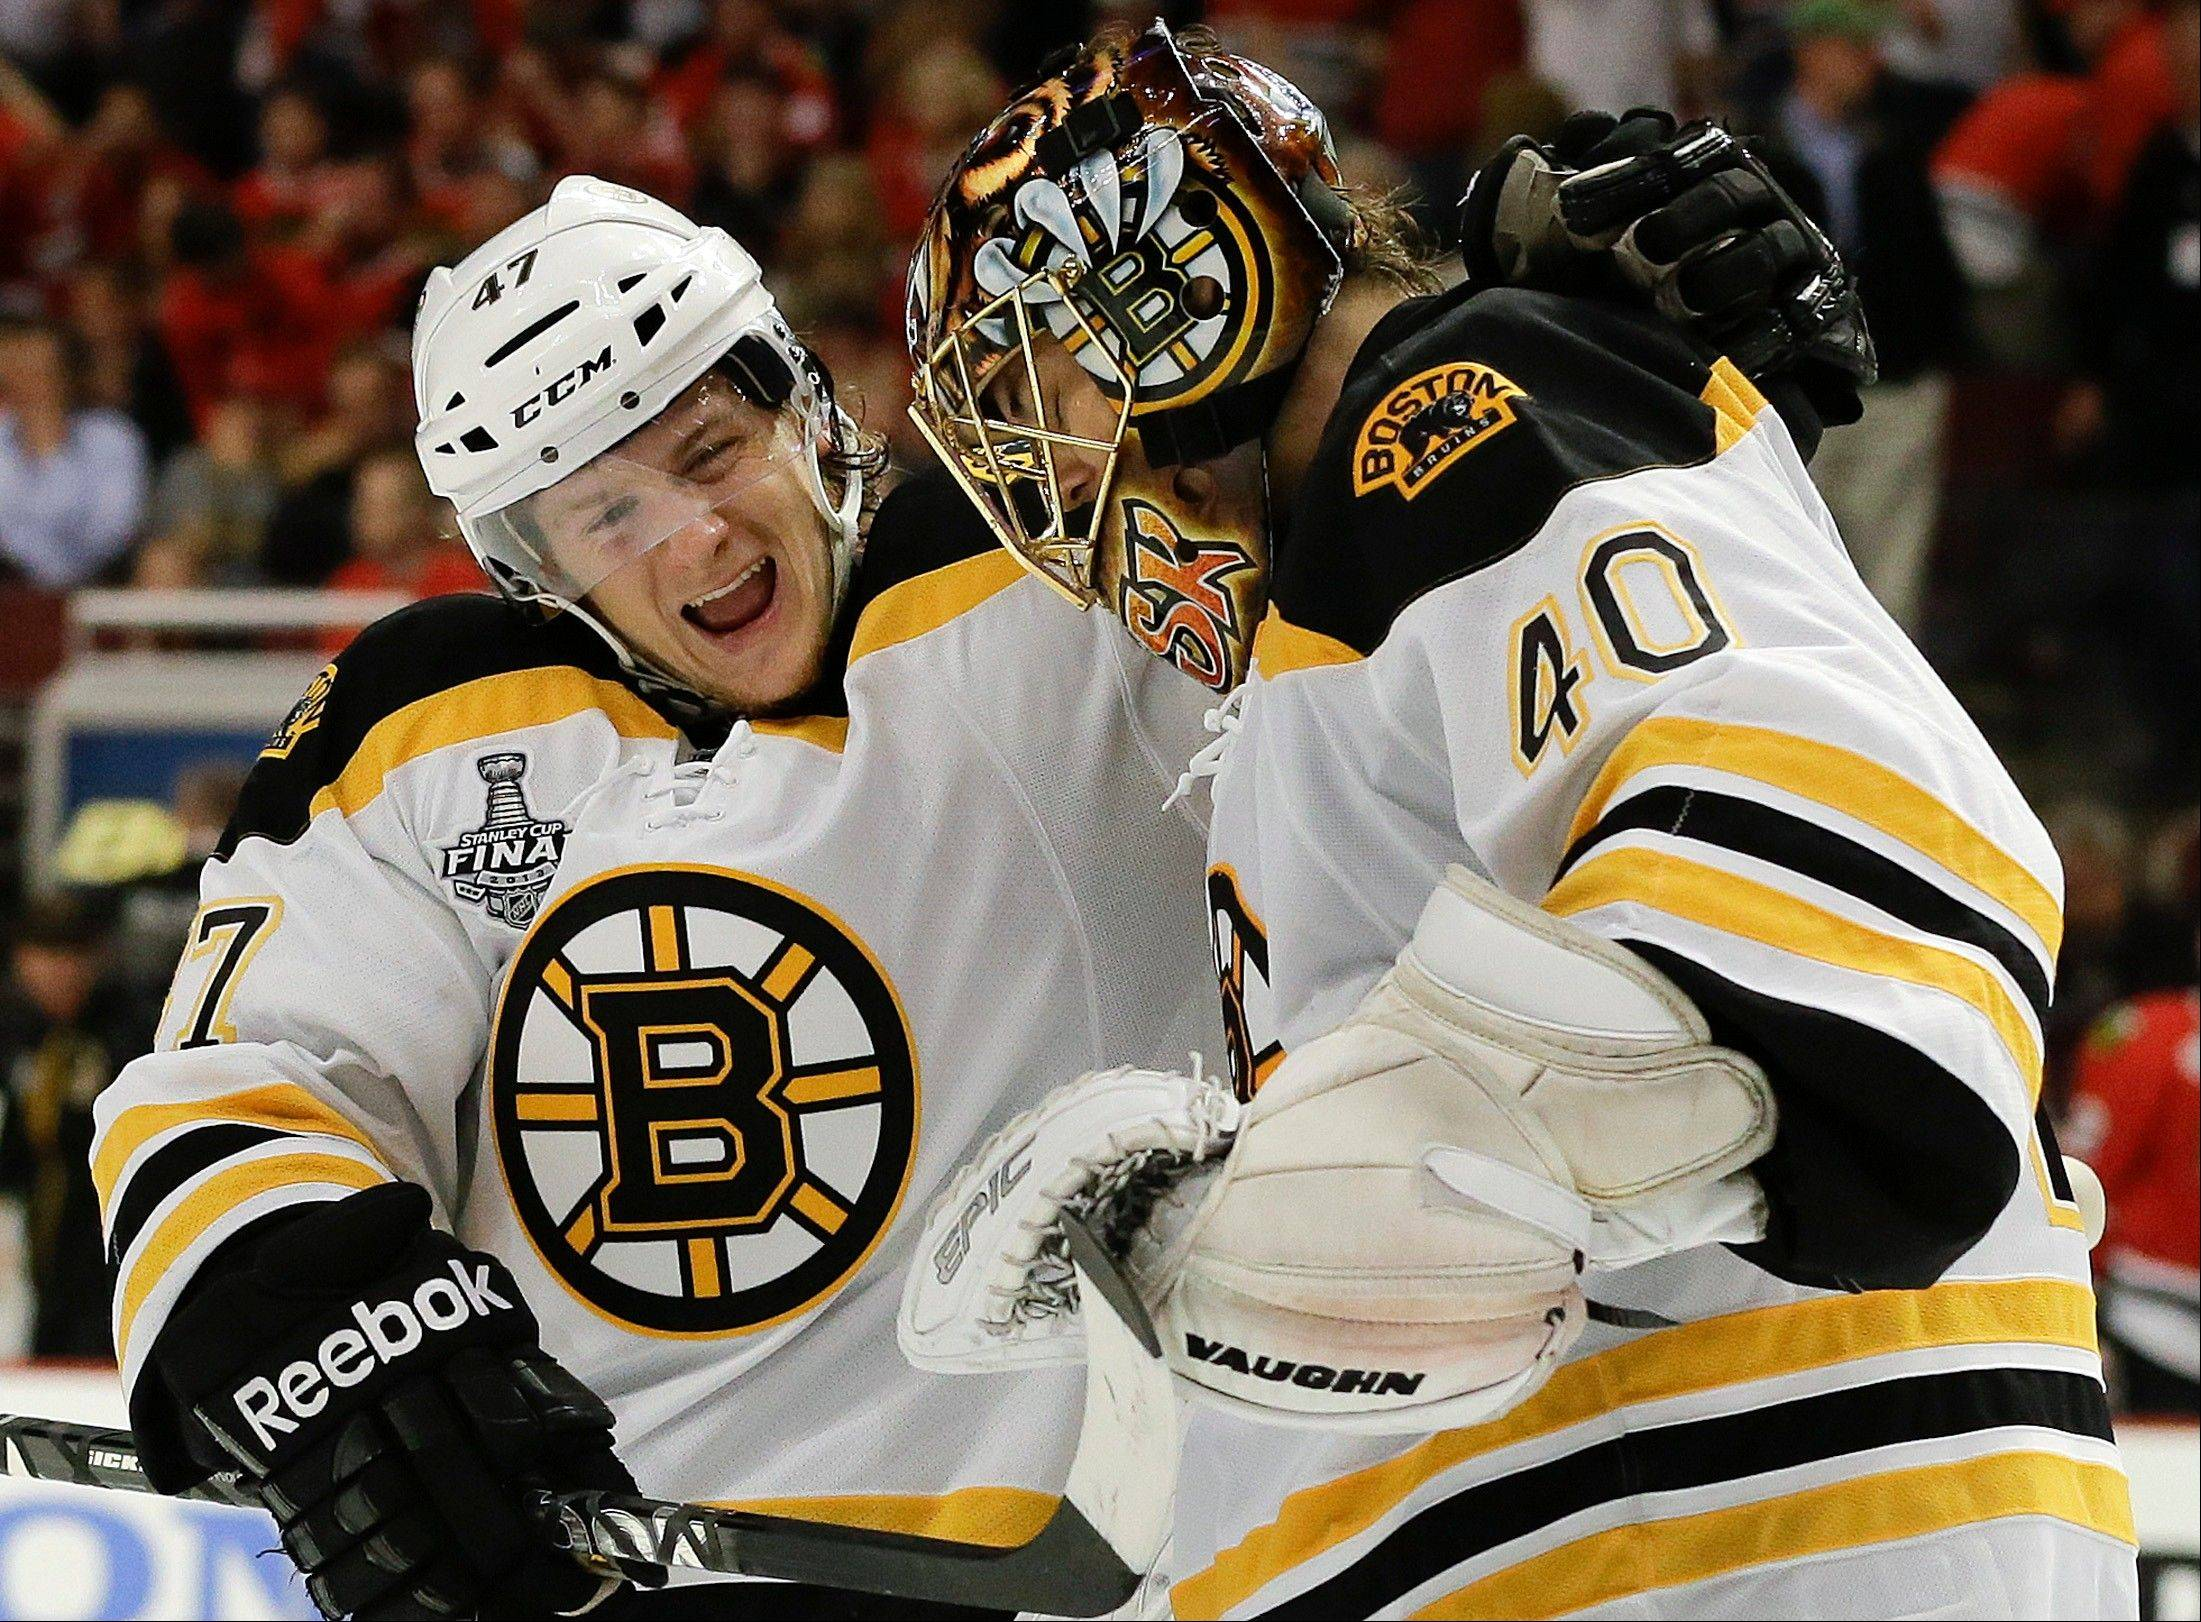 Boston Bruins defenseman Torey Krug celebrates Saturday with goalie Tuukka Rask after the Bruins beat the Hawks in overtime at United Center.